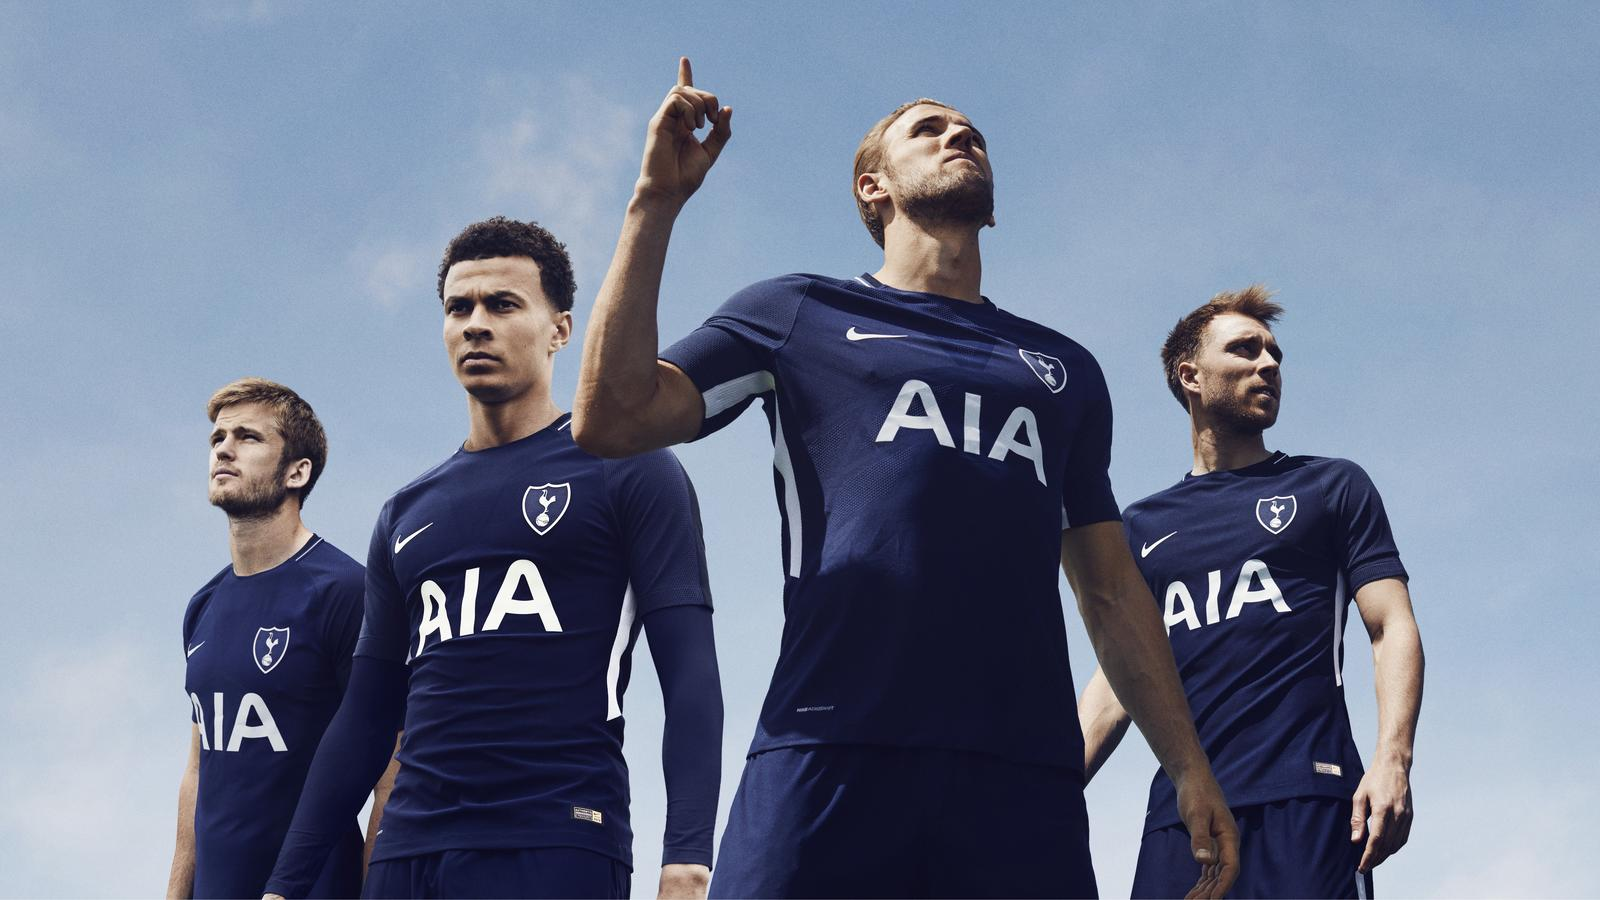 A NEW ERA DAWNS: NIKE FOOTBALL OUTFITS TOTTENHAM HOTSPUR FOR 2017/18 1